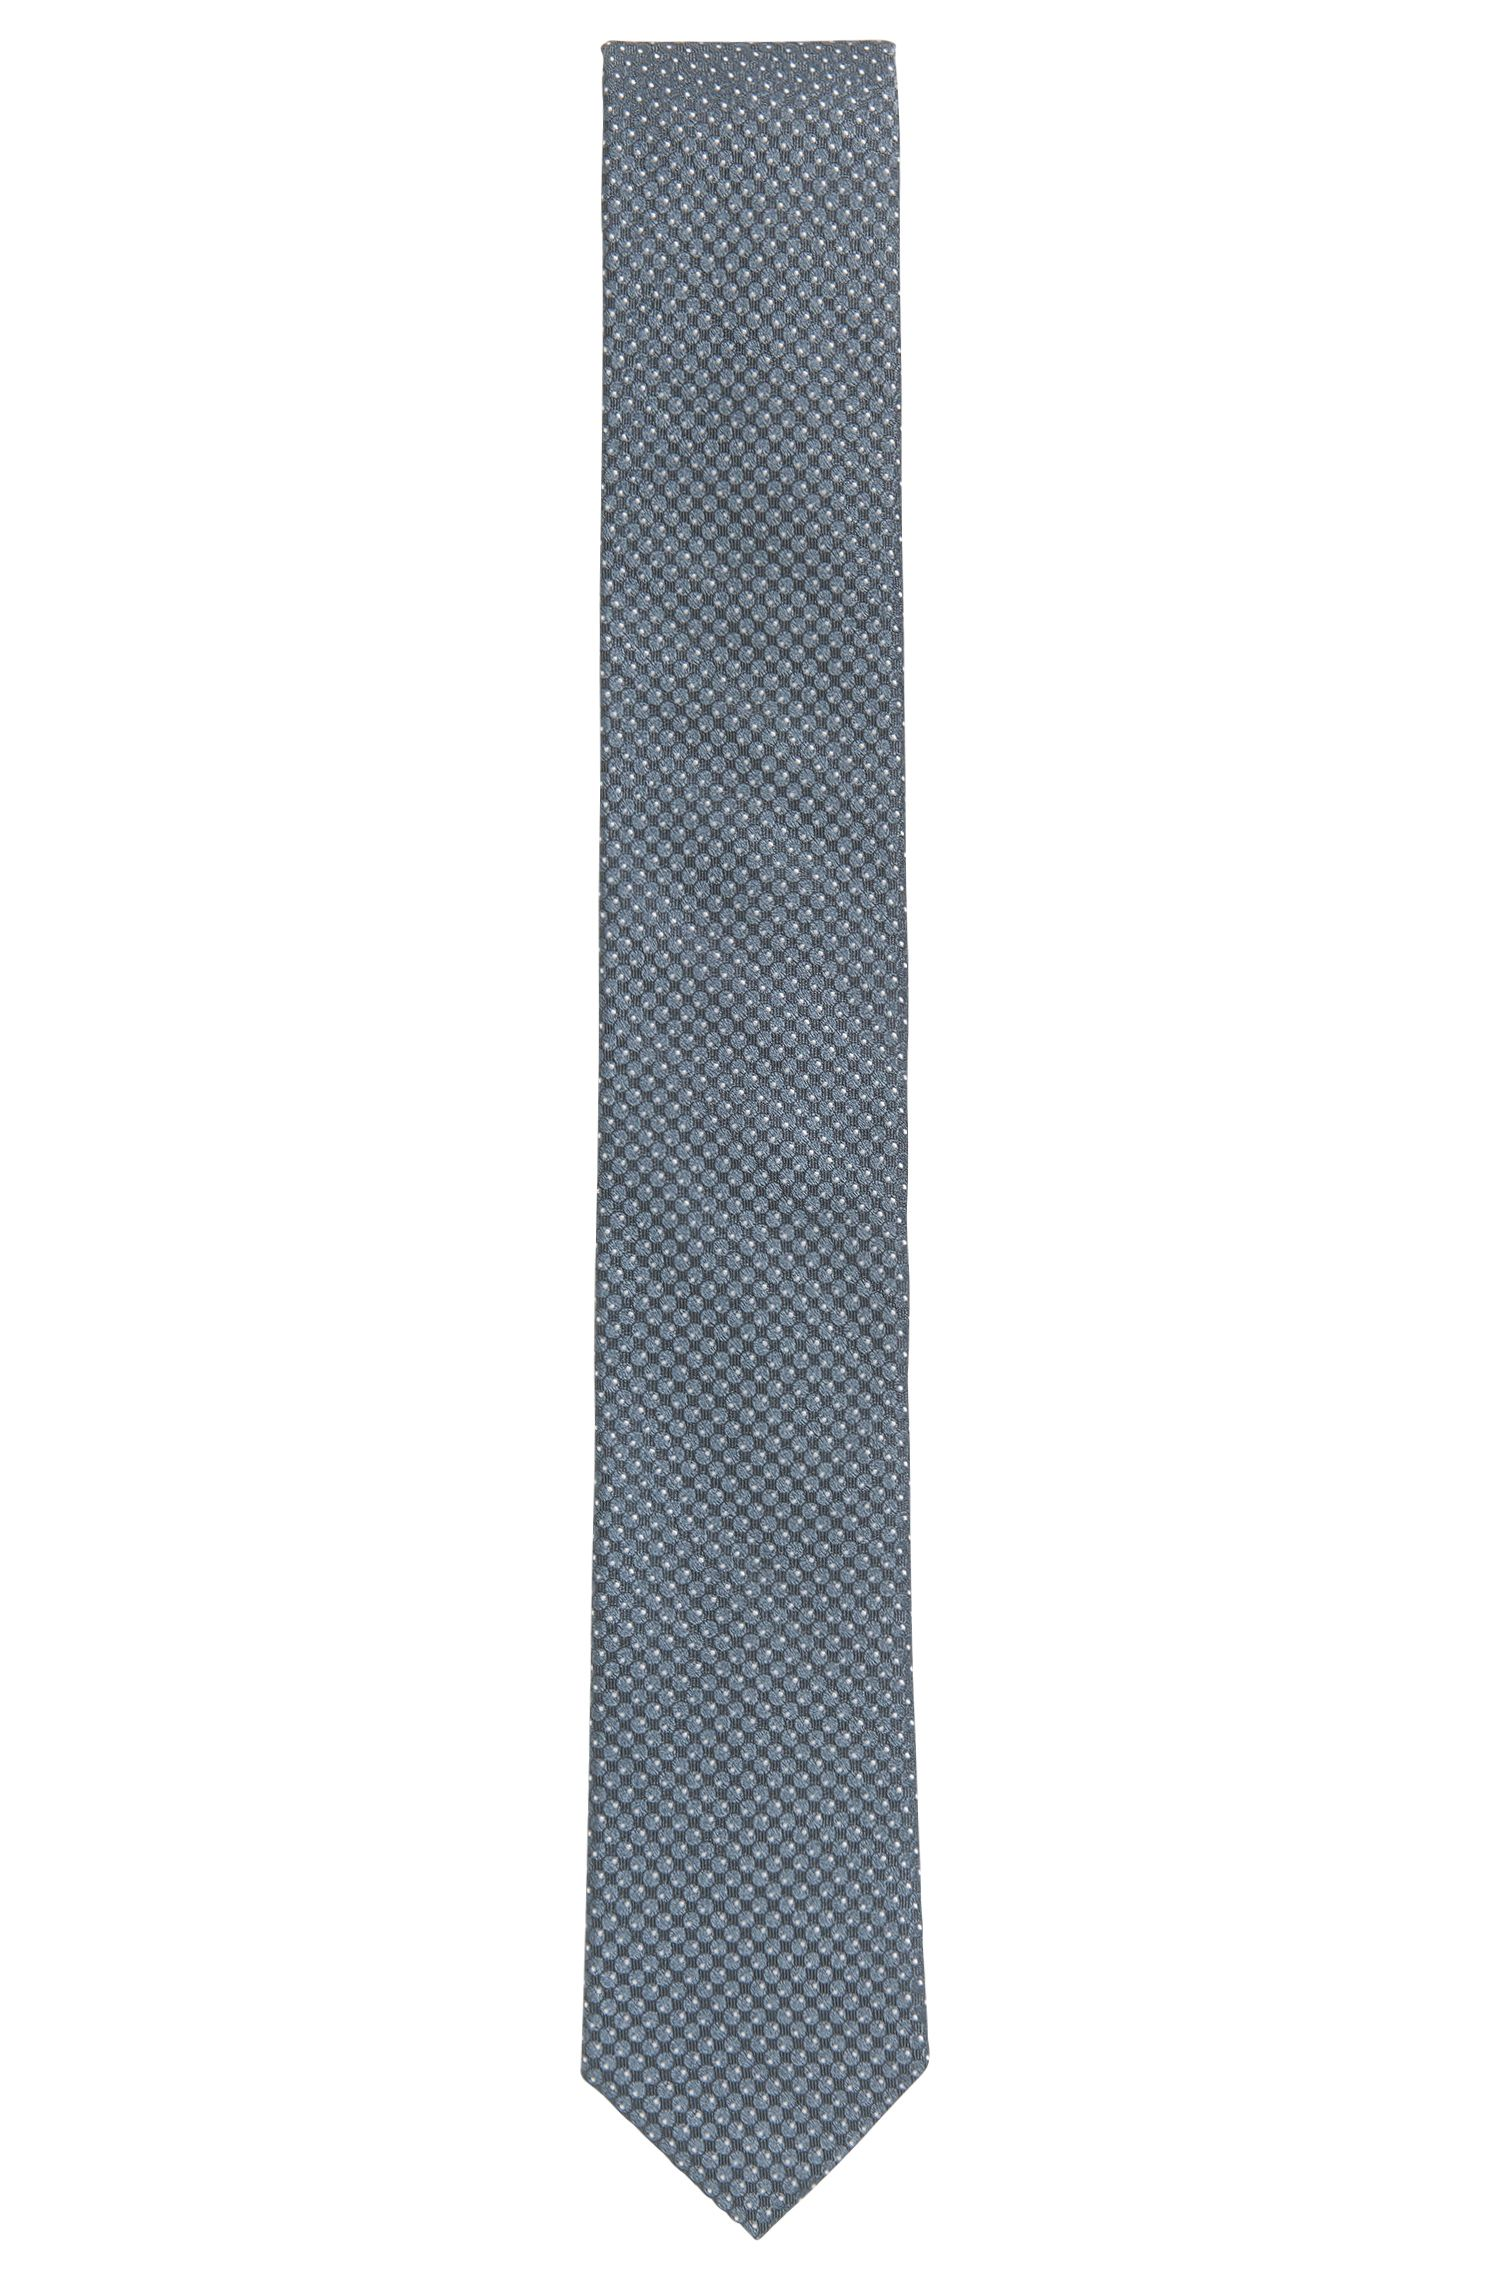 Italian-made dot-patterned tie in silk jacquard